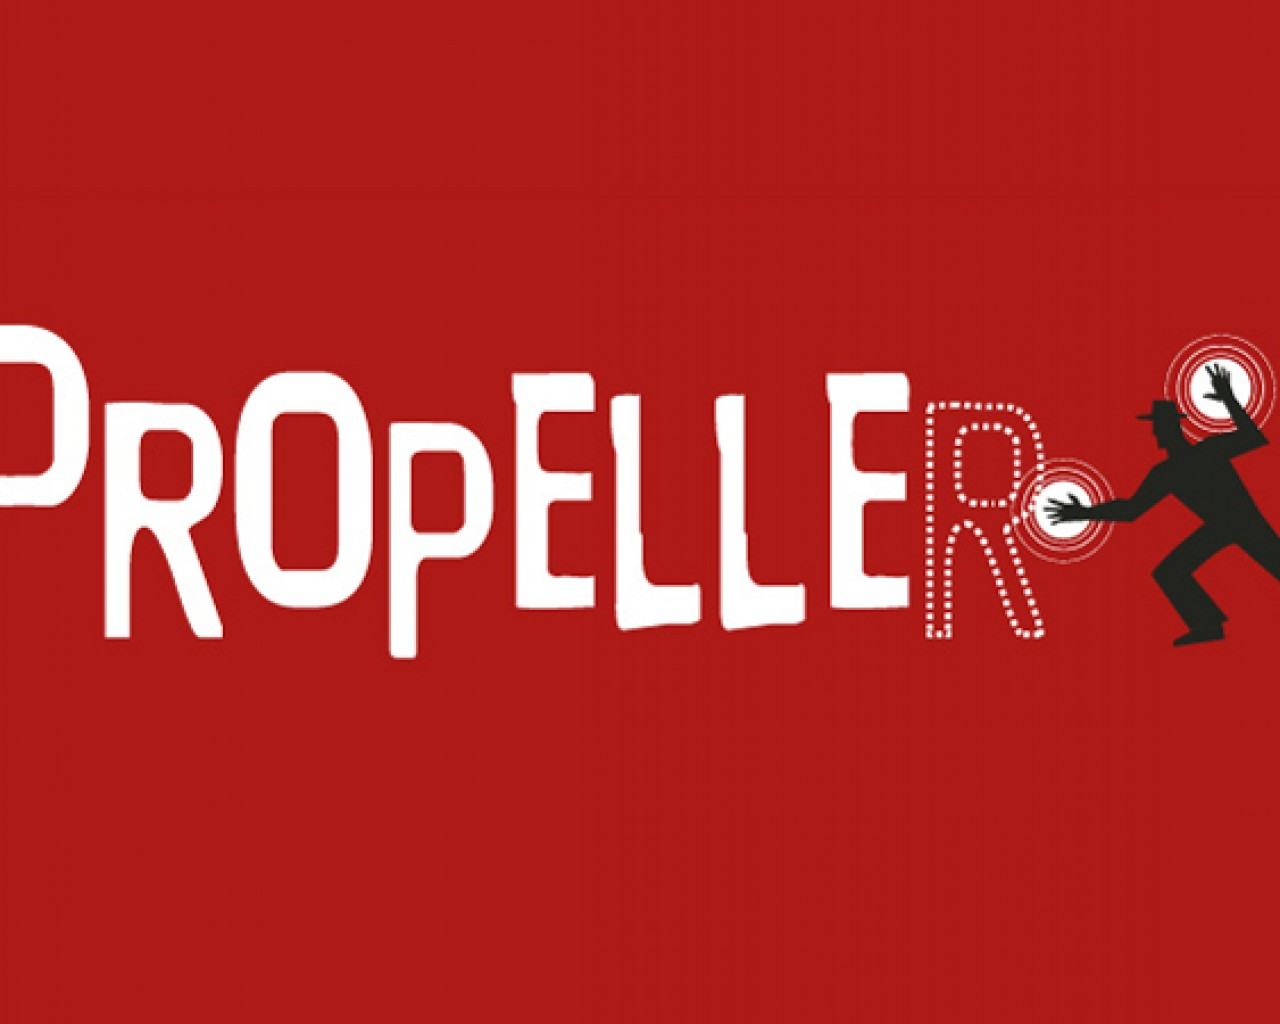 Poster Image for Propeller